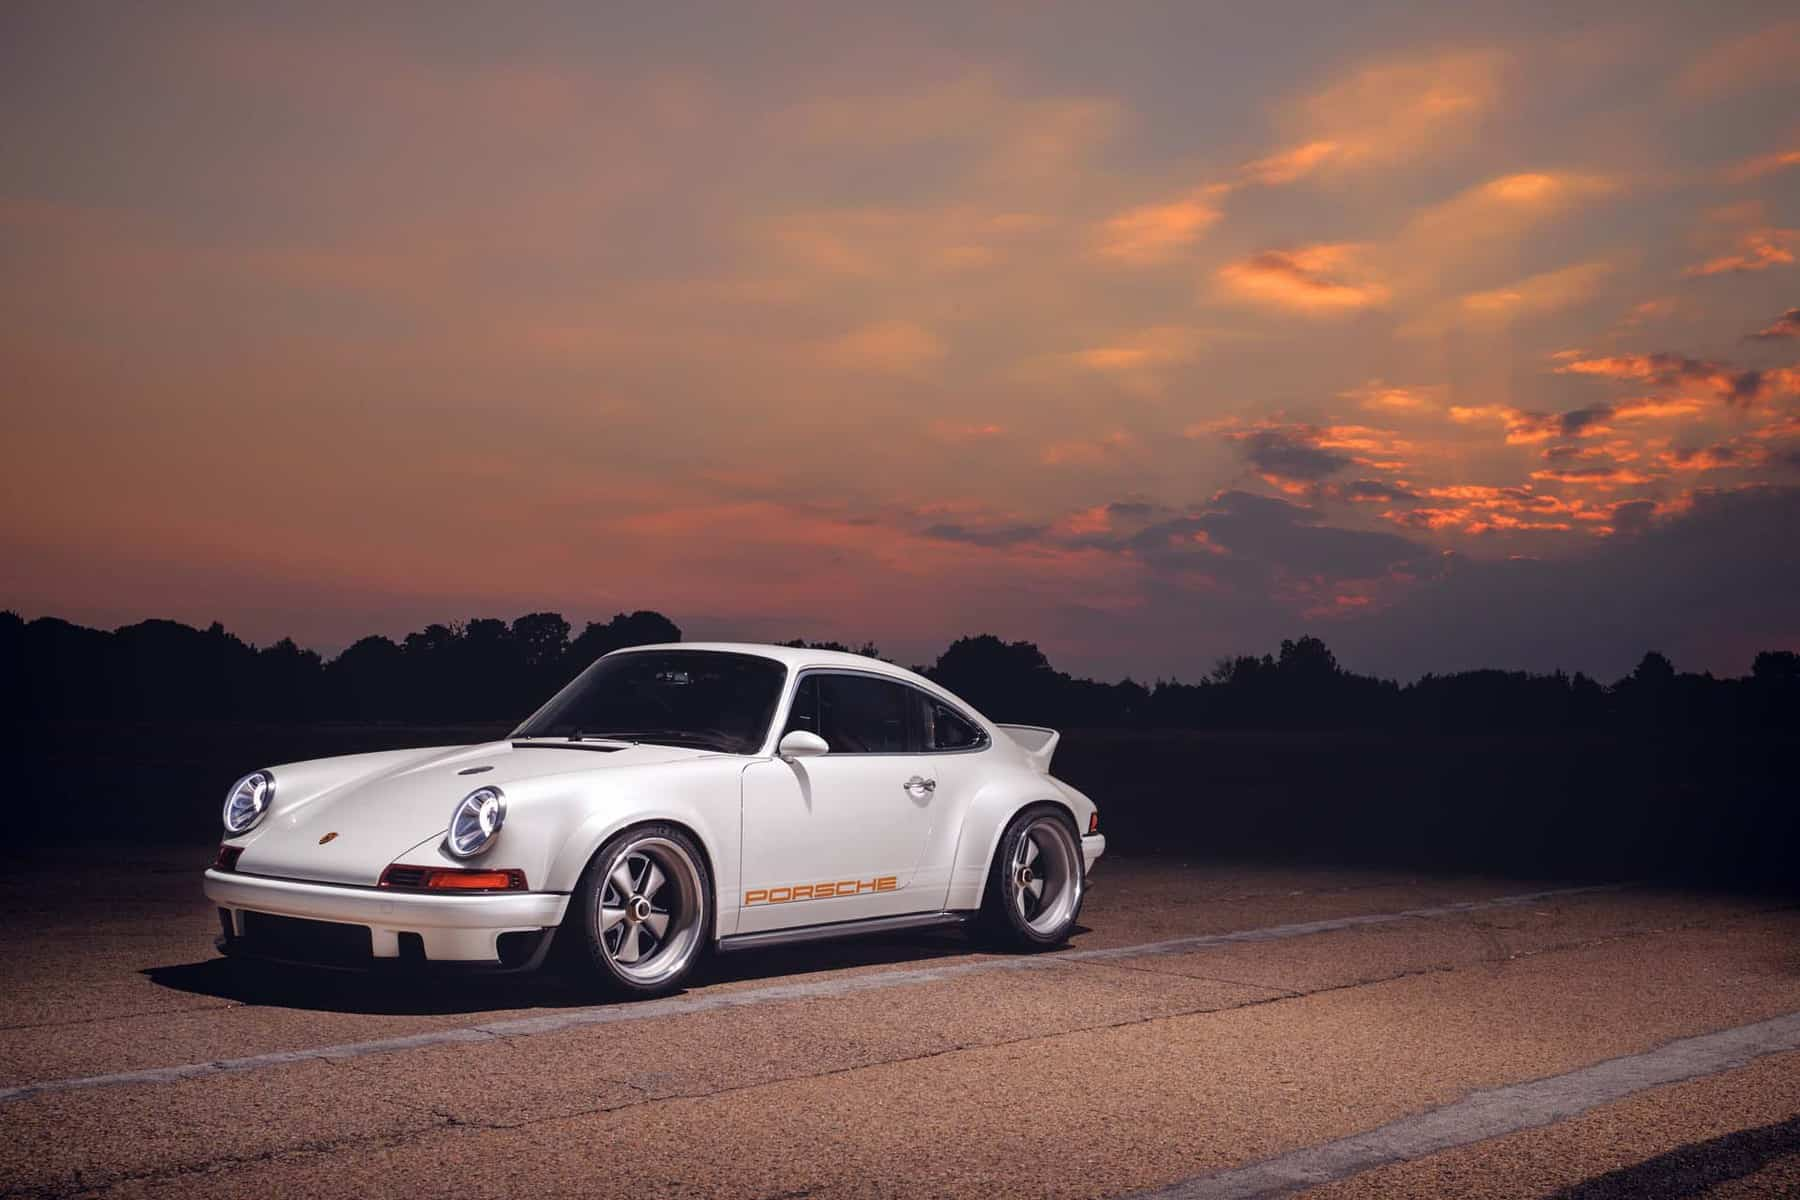 Singer's Most Advanced Air-Cooled 911 is Automotive Perfection